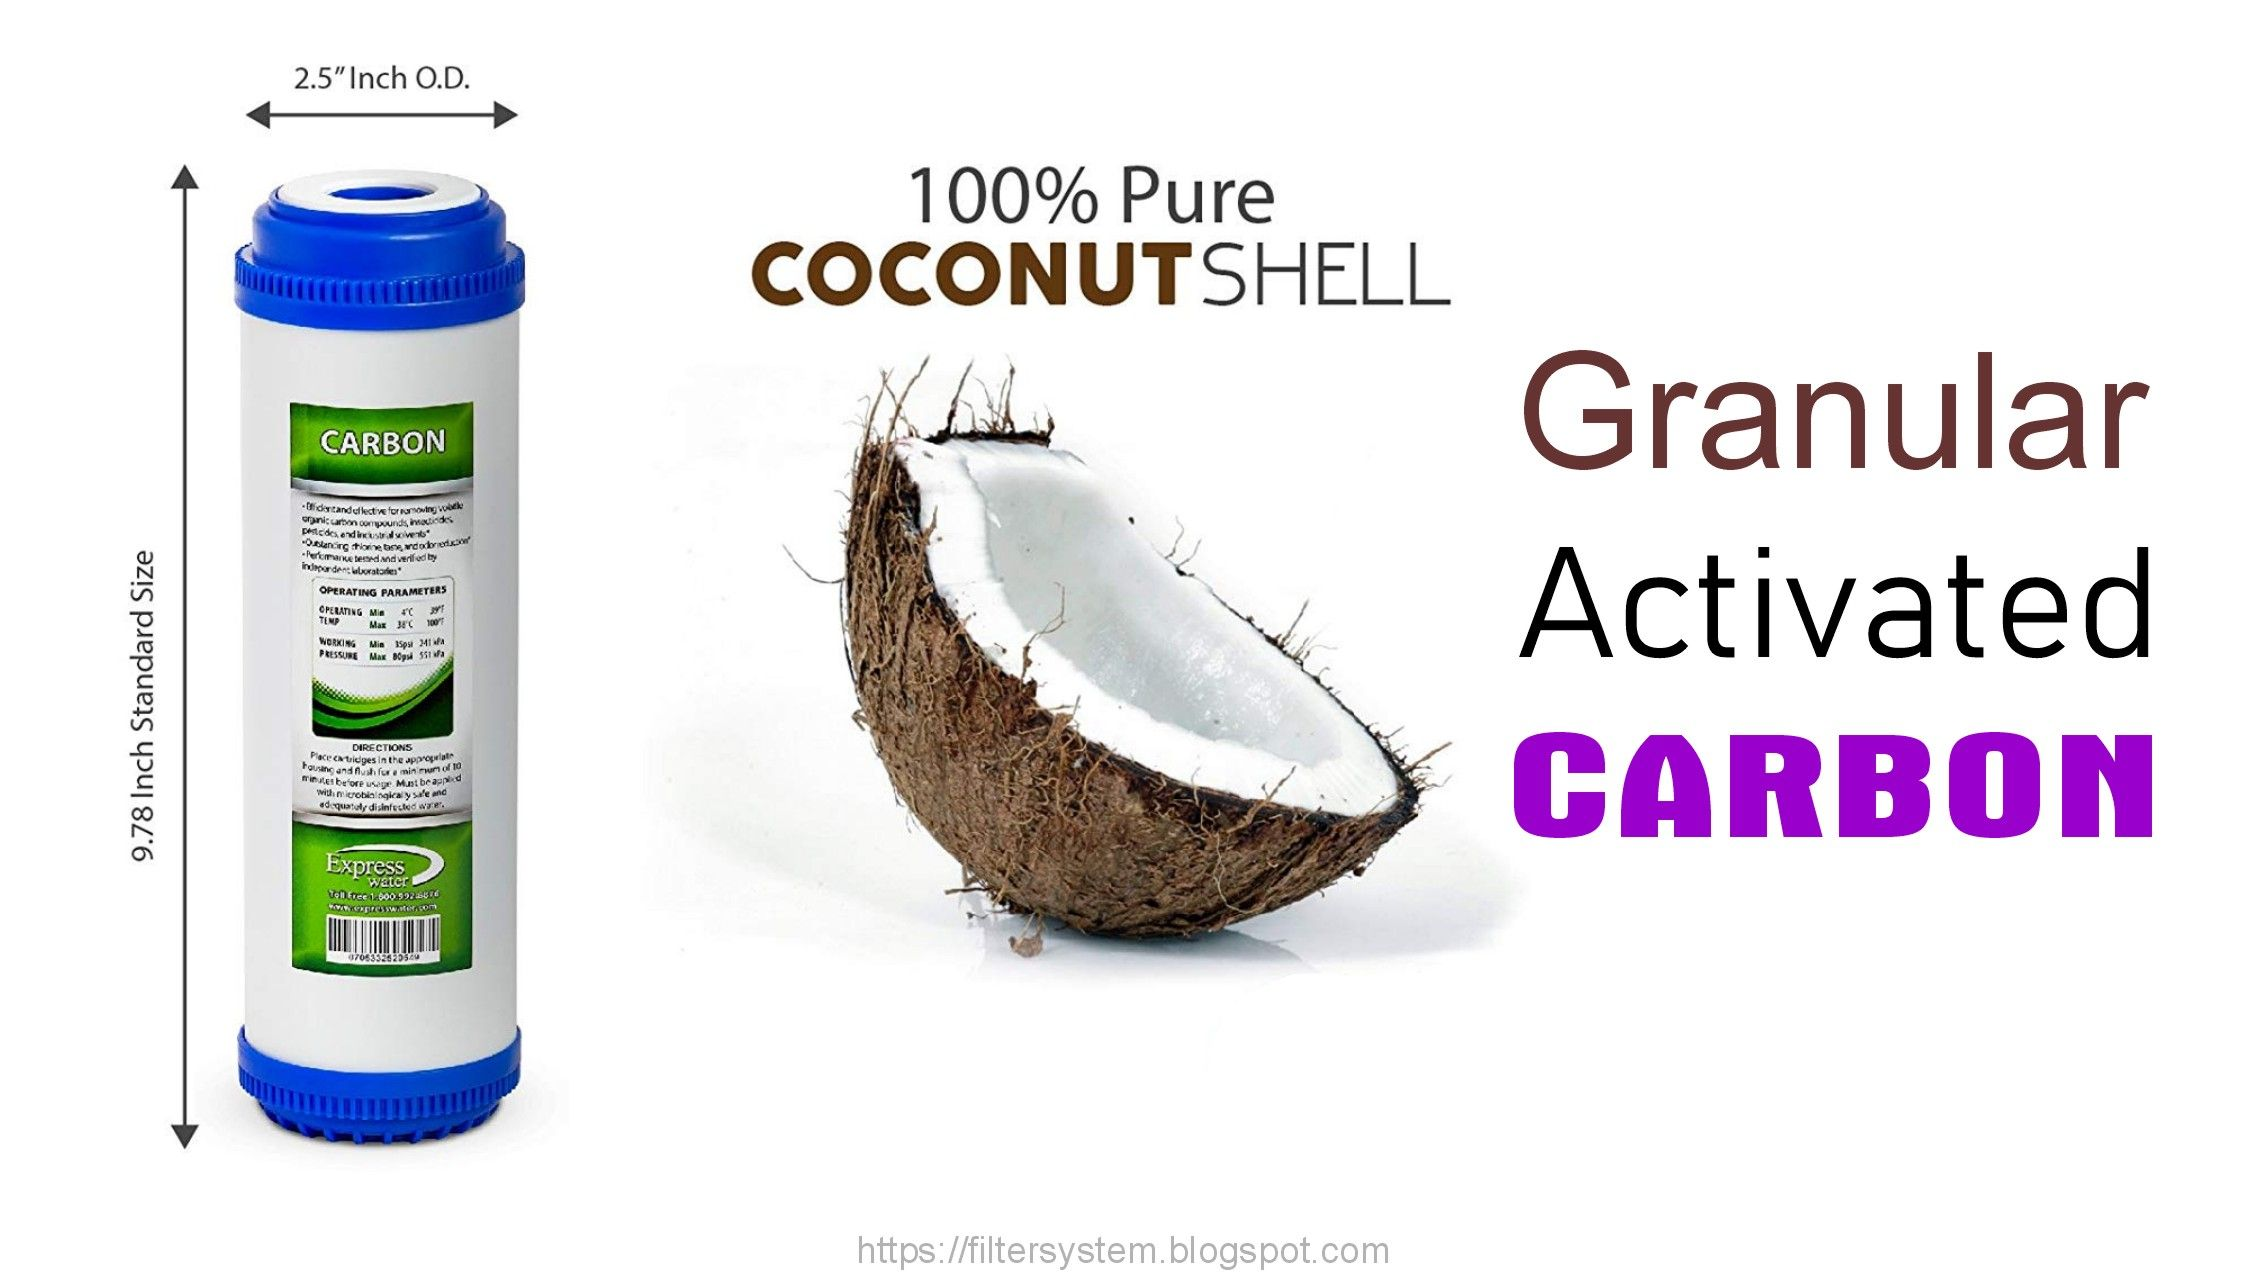 Granular Activated Carbon Activated Carbon Reverse Osmosis System Water Filter Cartridge